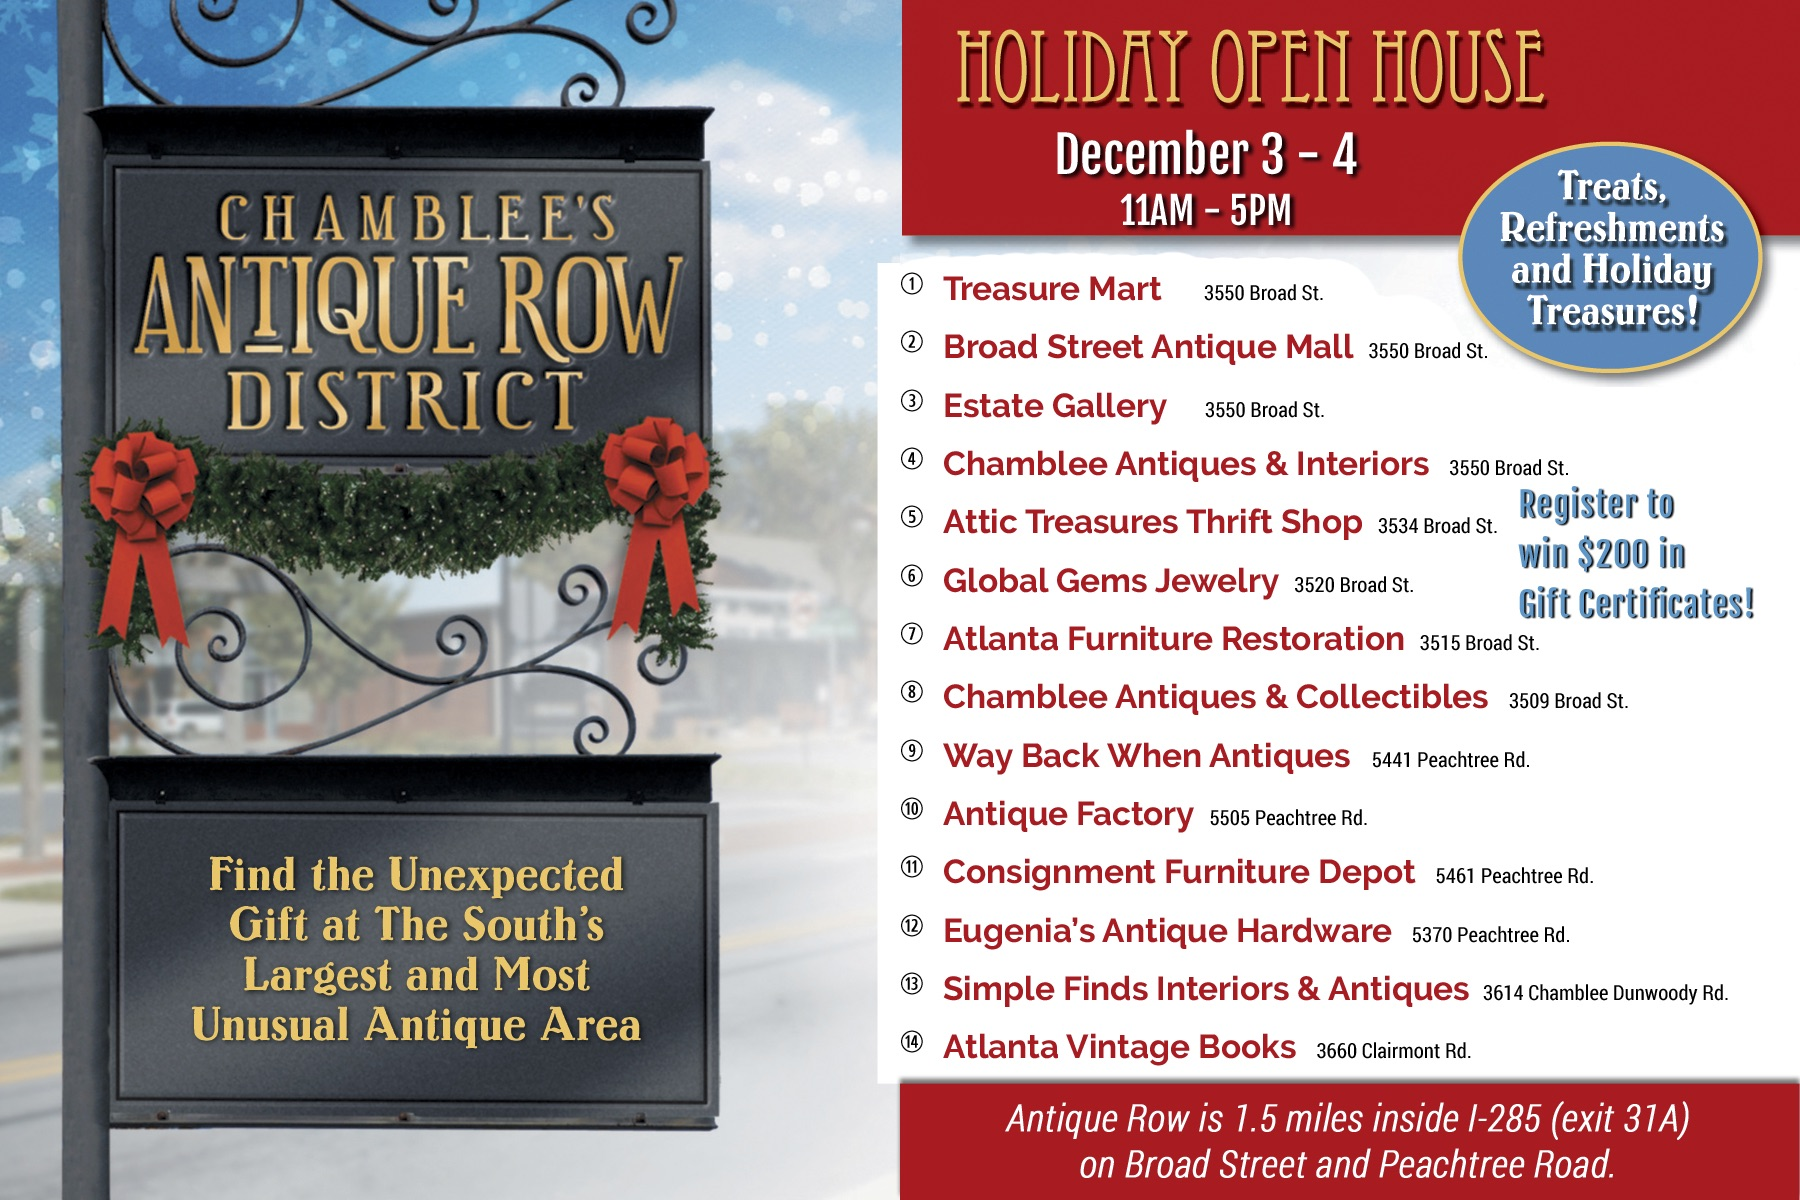 Holiday Open house - Dec. 3 - 4